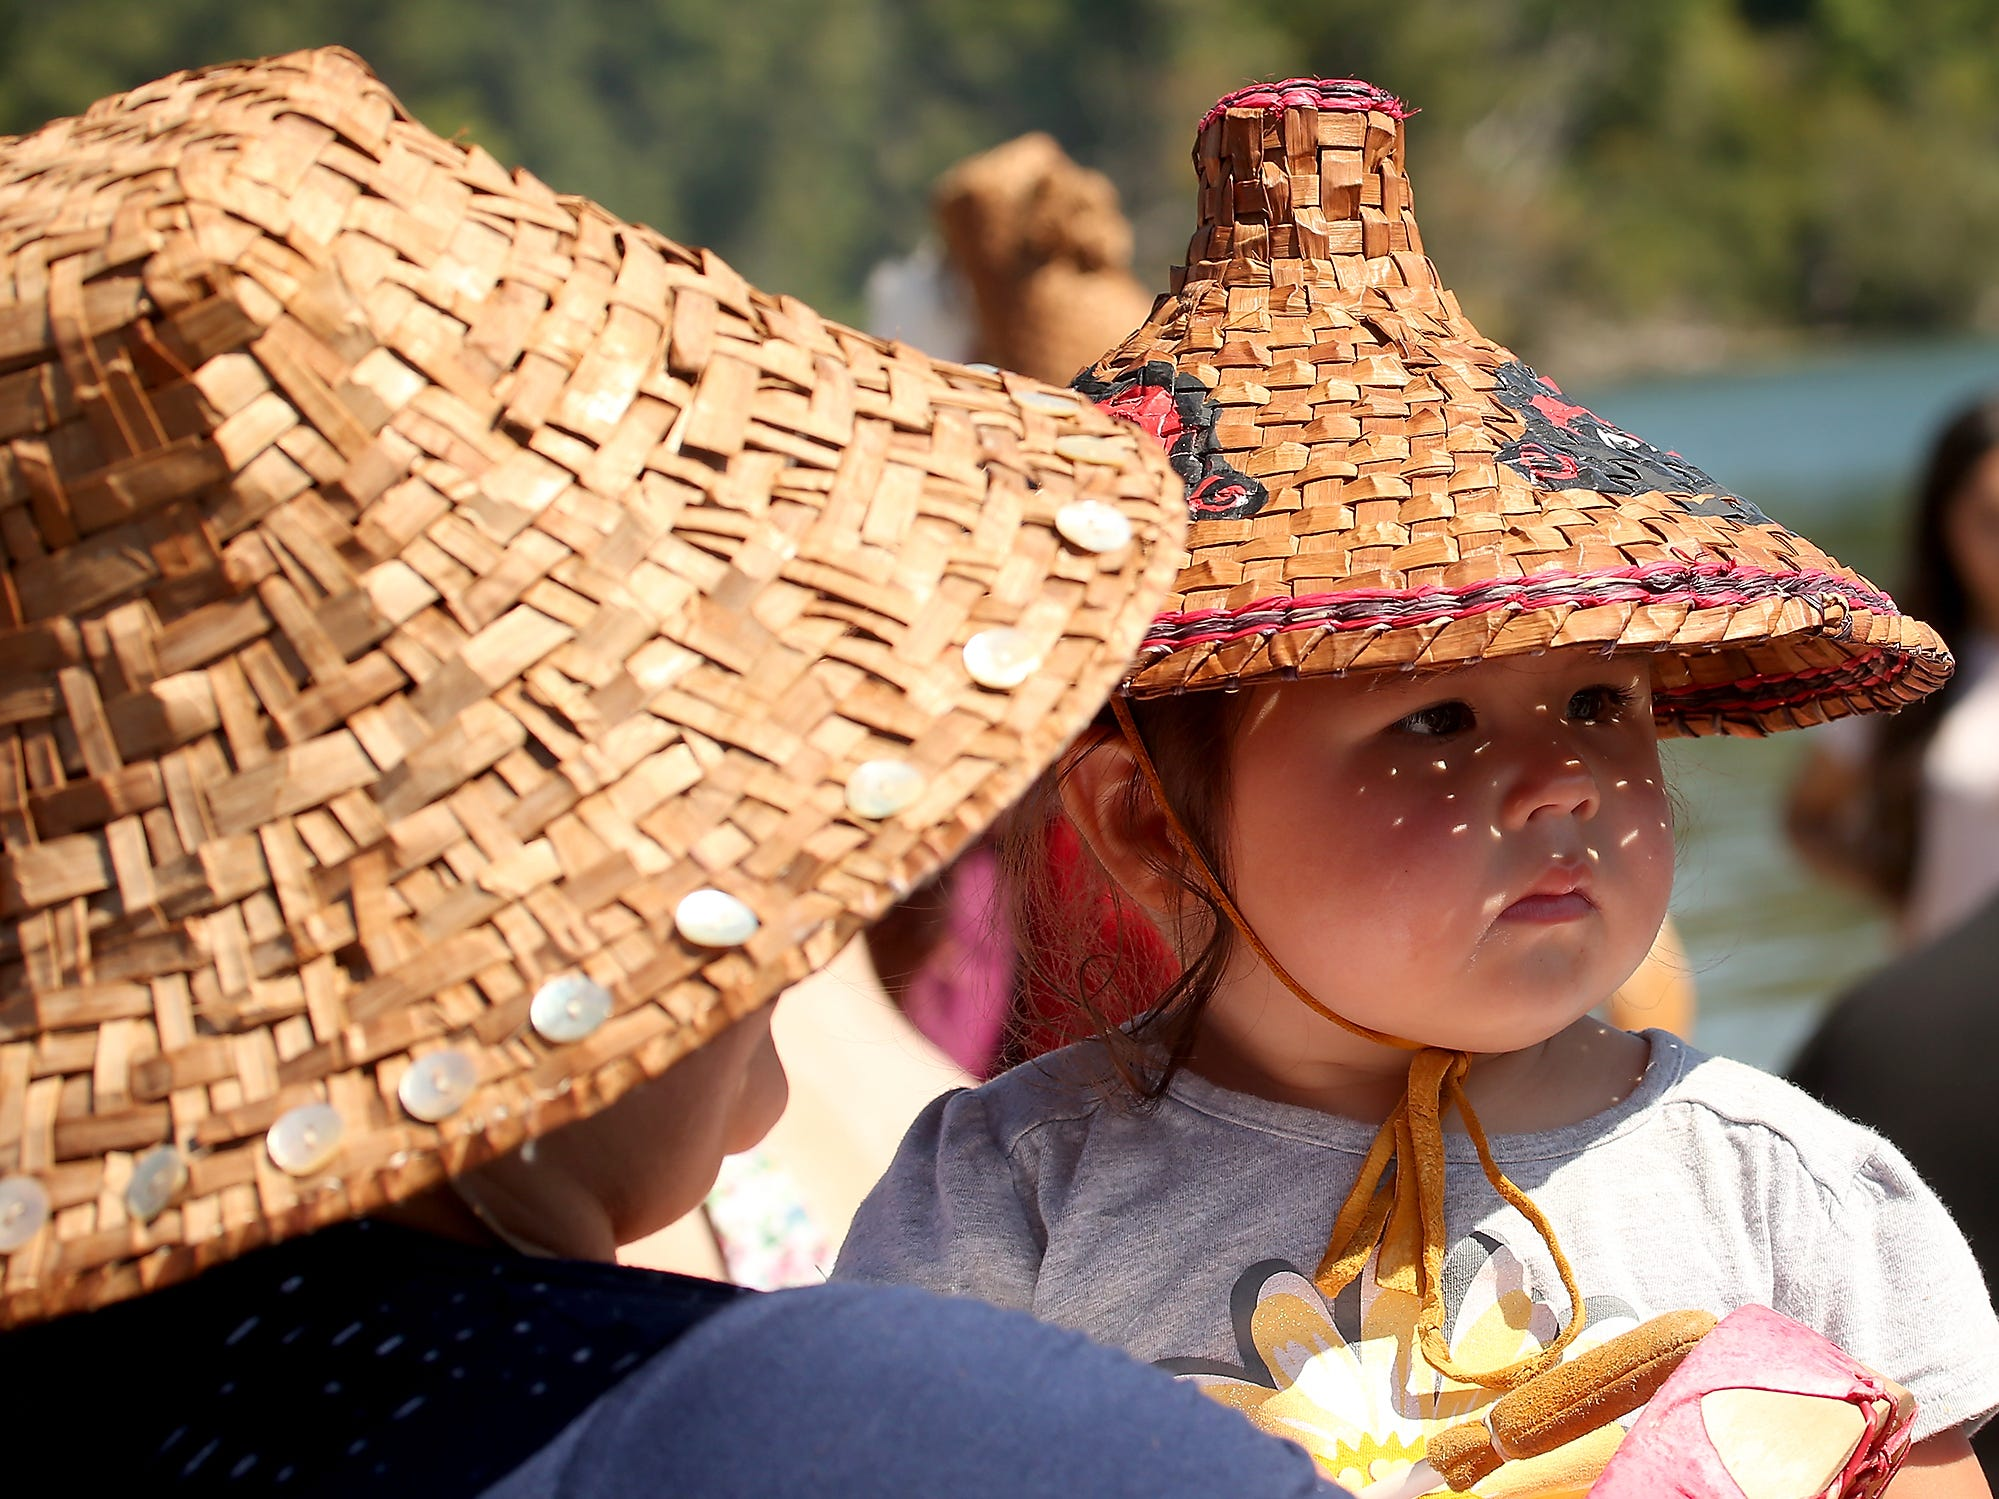 Dapples by the sunshine through her hat, Emma Marquez, 4, a member of the Lower Elwha Klallam Tribe, watches as the canoes head for the shore during the Tribal Canoe Journey ÒPaddle to PuyallupÓ landing at Point Julia on Tuesday, July 24, 2018.